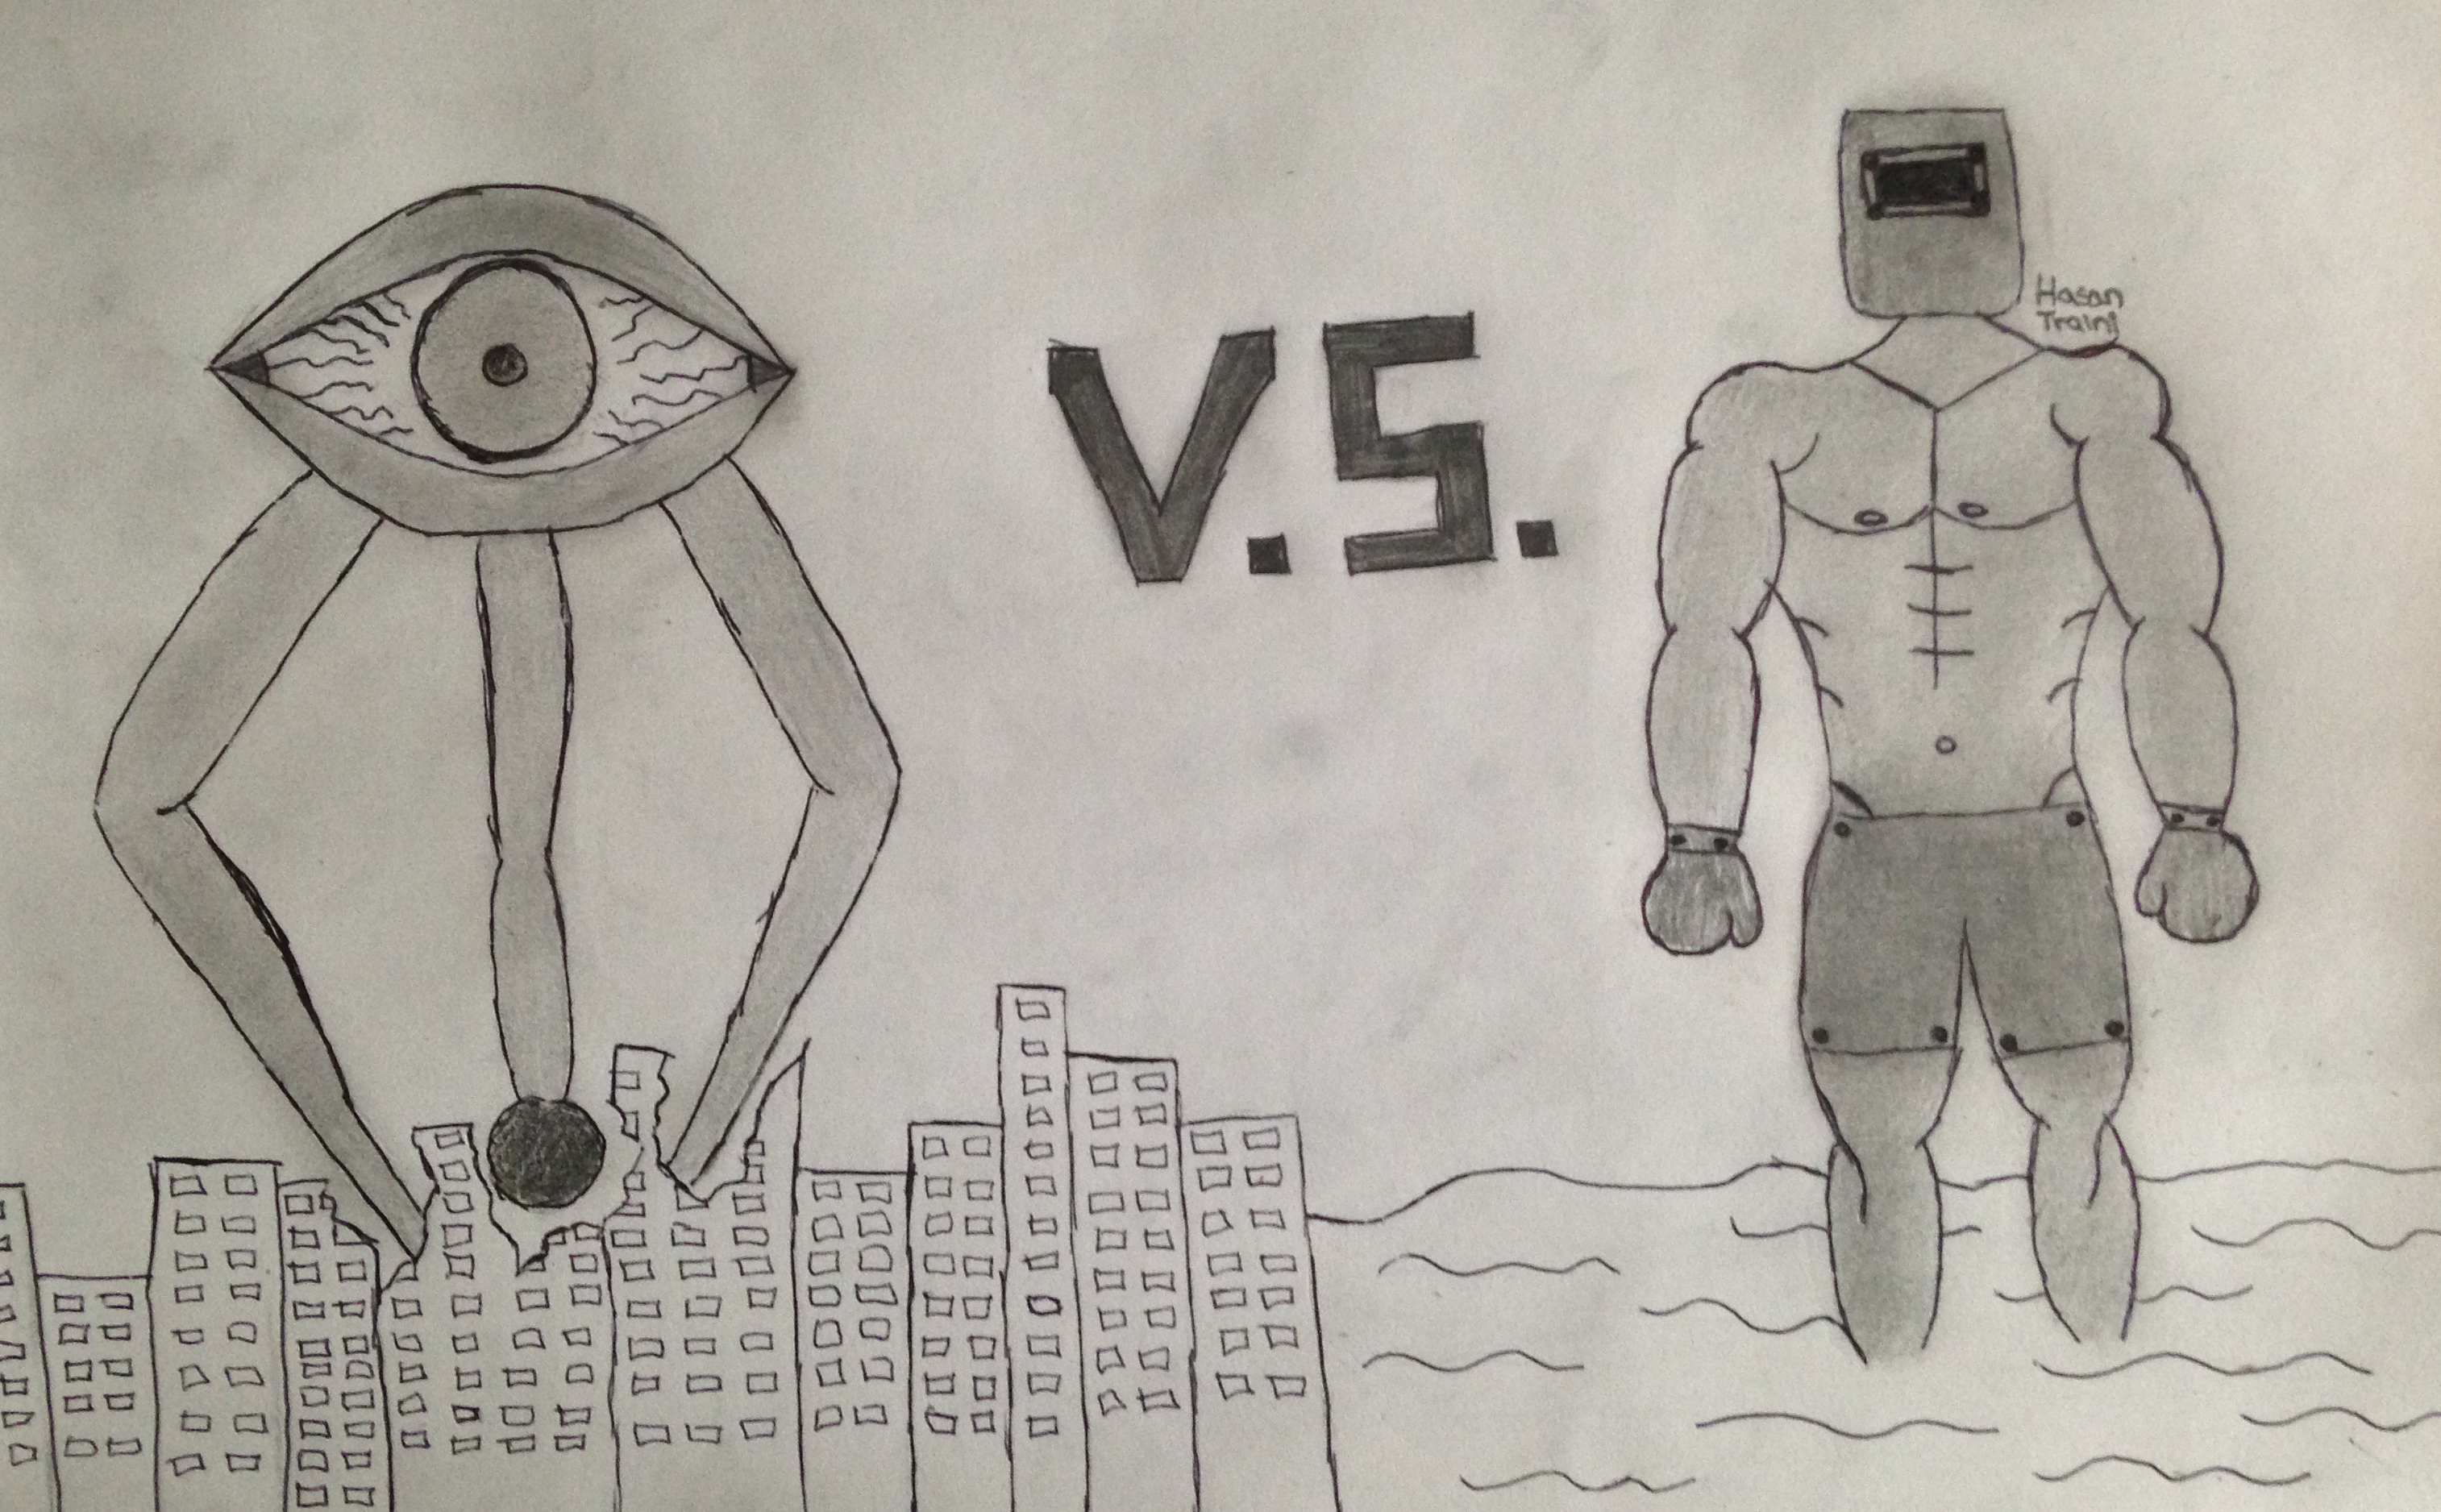 Walkeye VS Ironmuscles